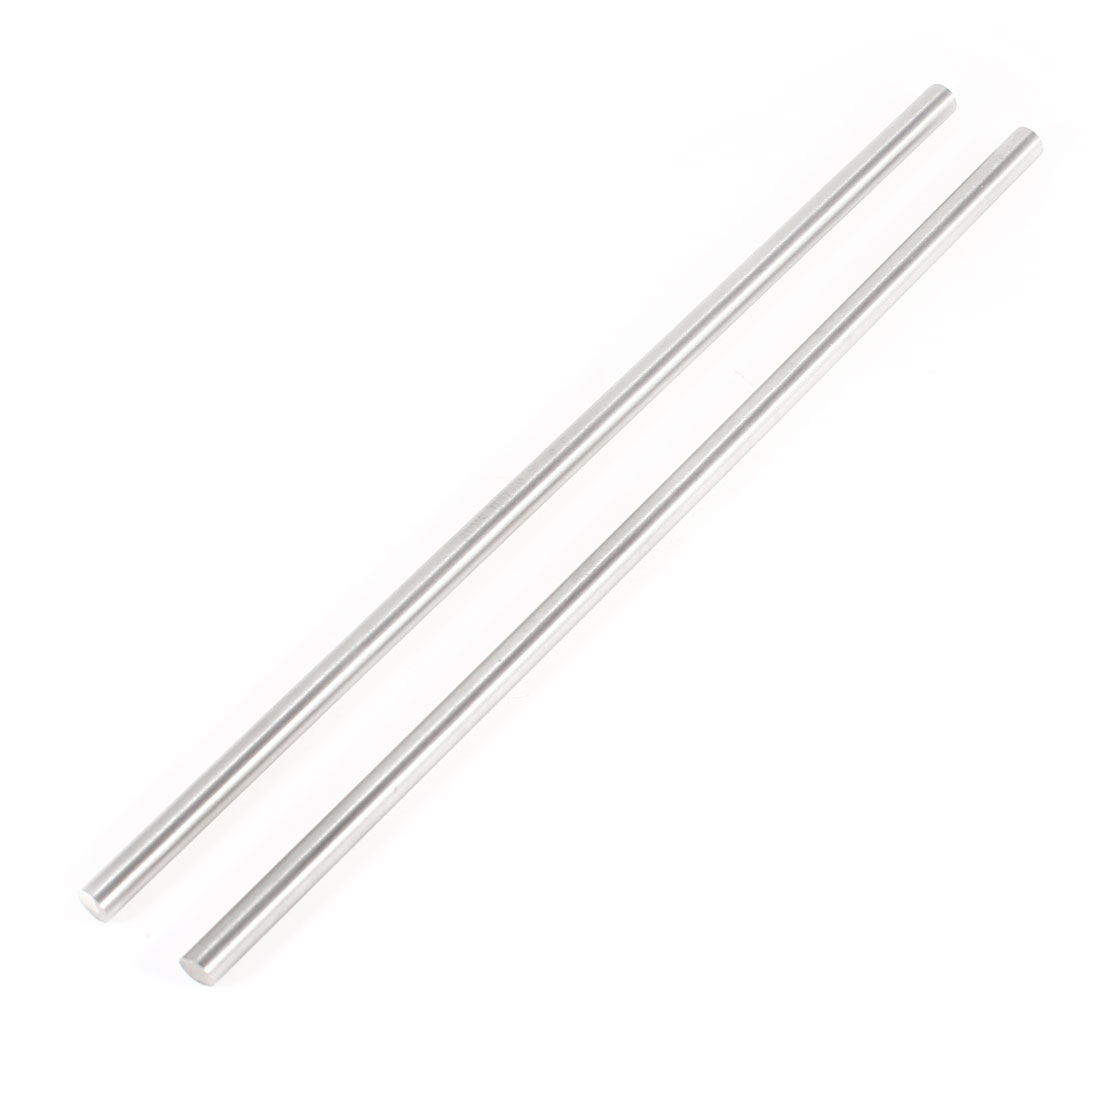 UXCELL 2Pcs Gray Steel Round Rod Turning Lathe Bars Tool 6Mm X 200Mm